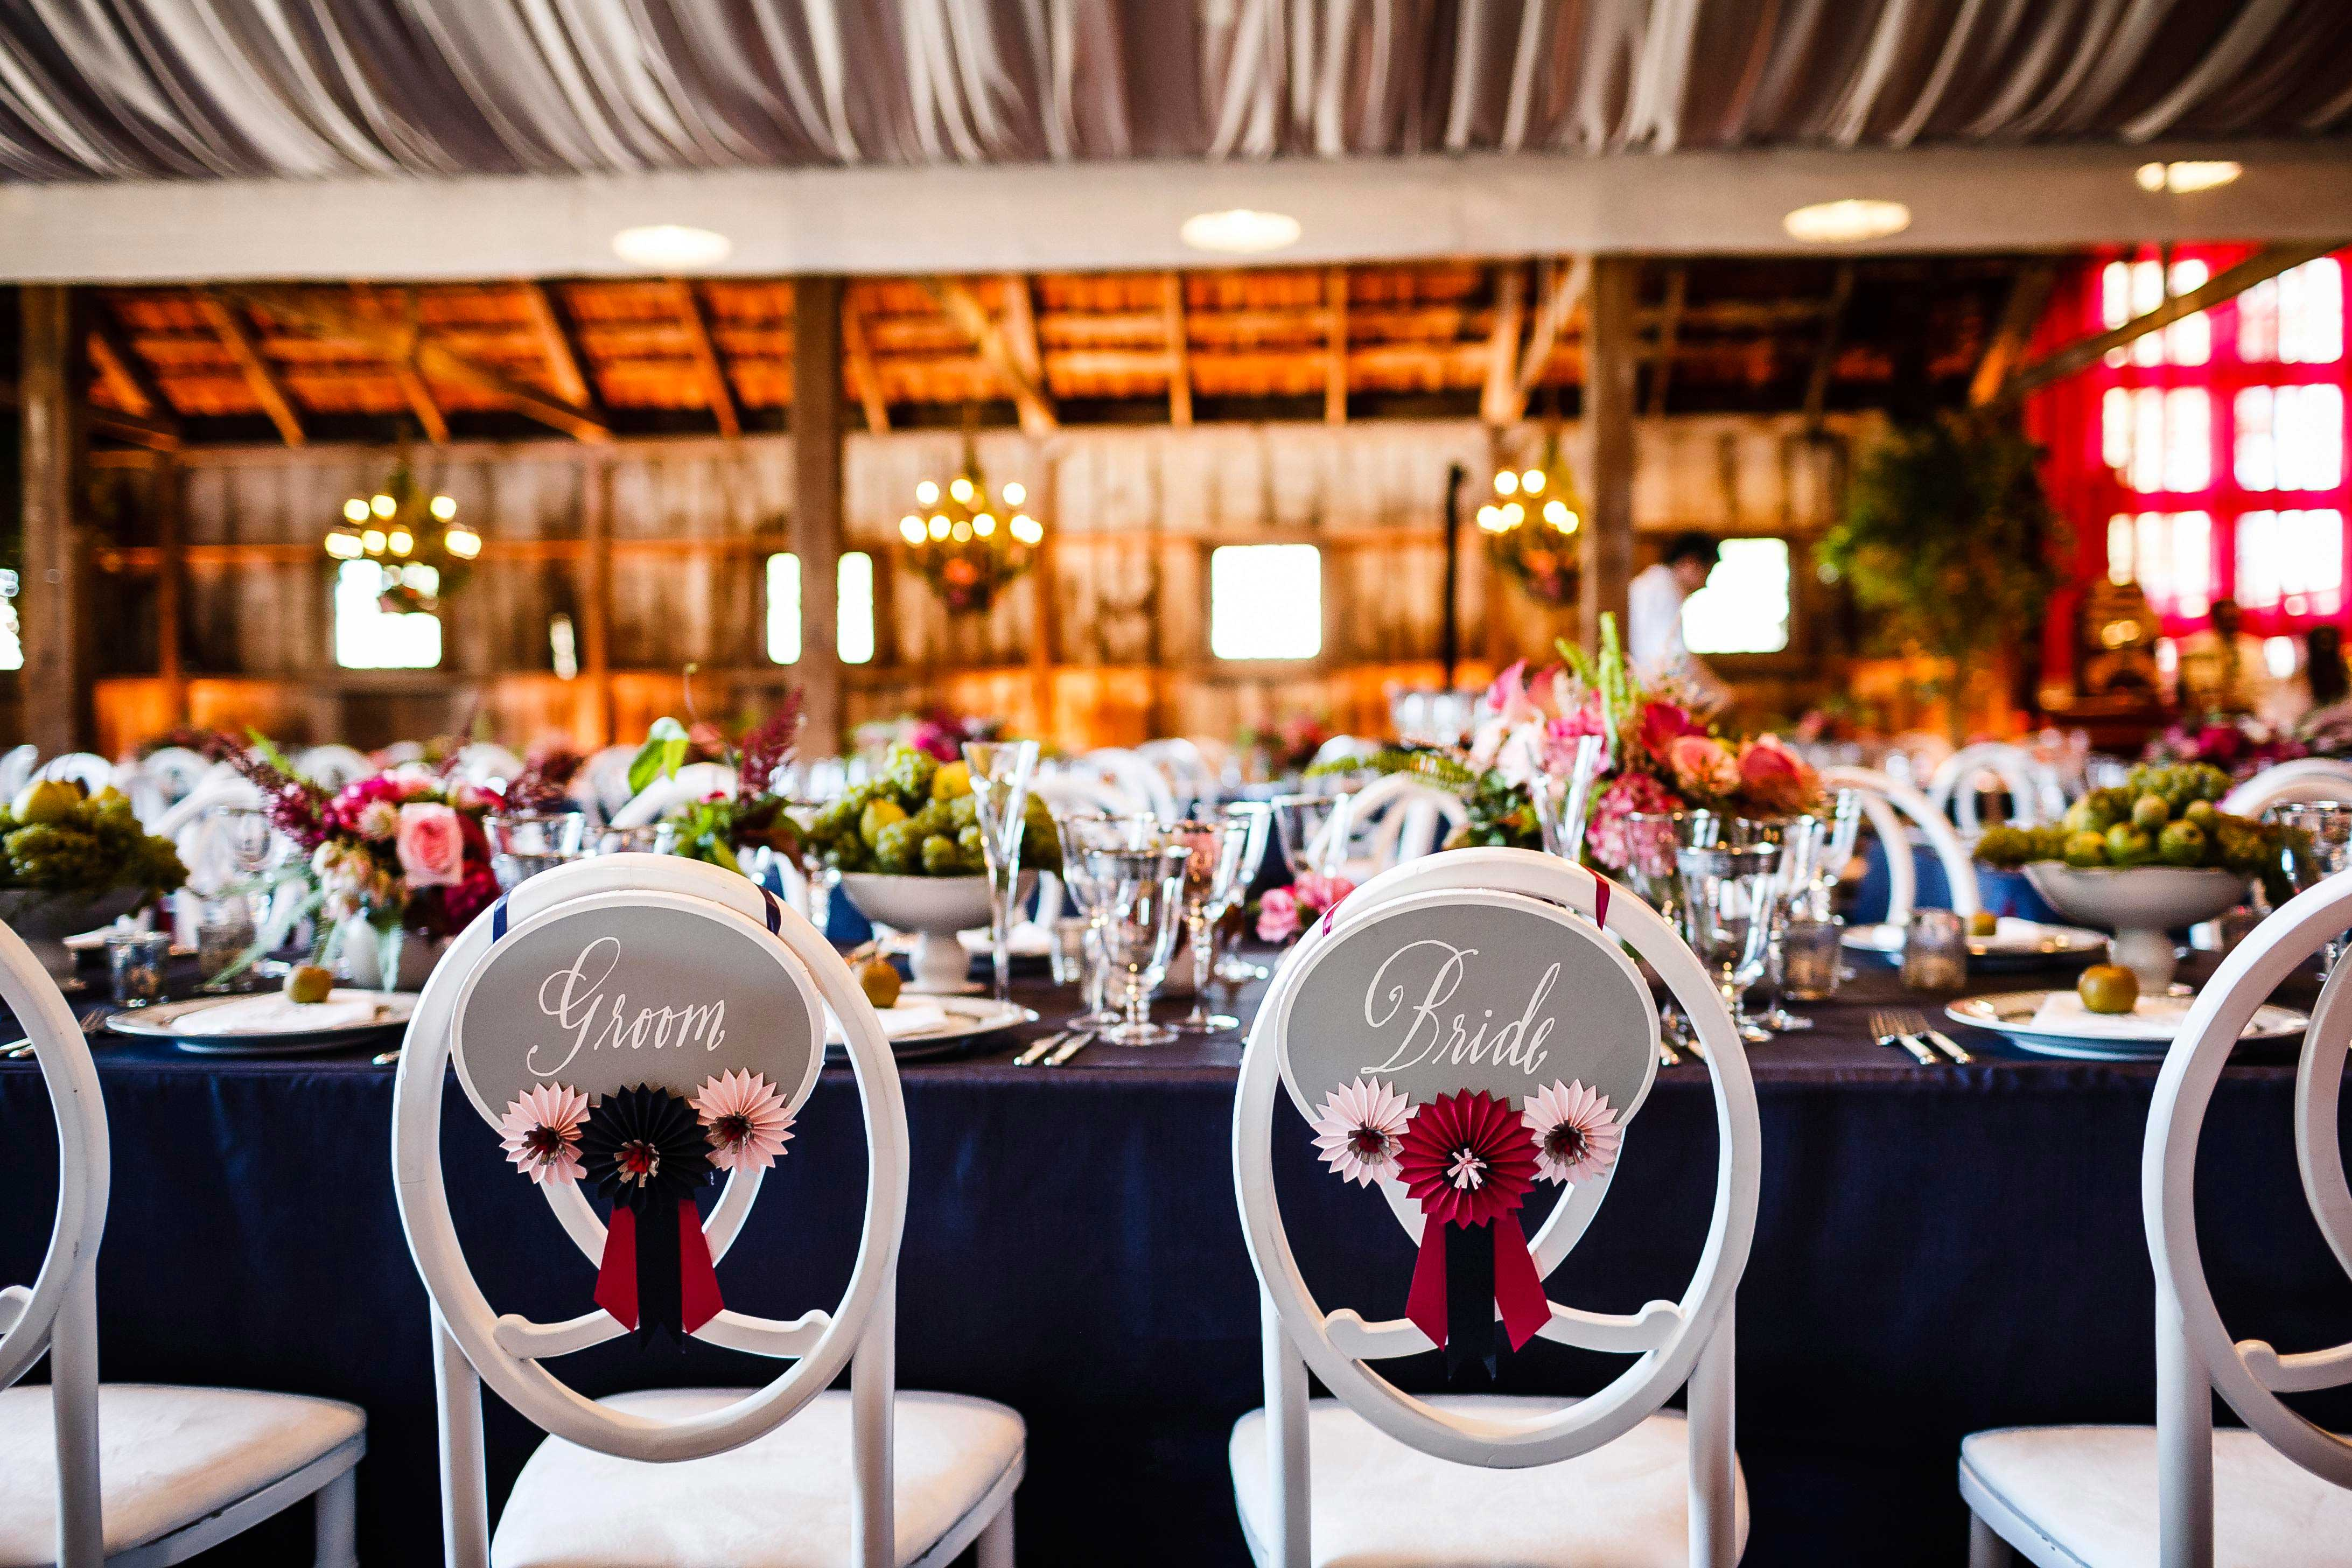 Grey bride and groom chair signs